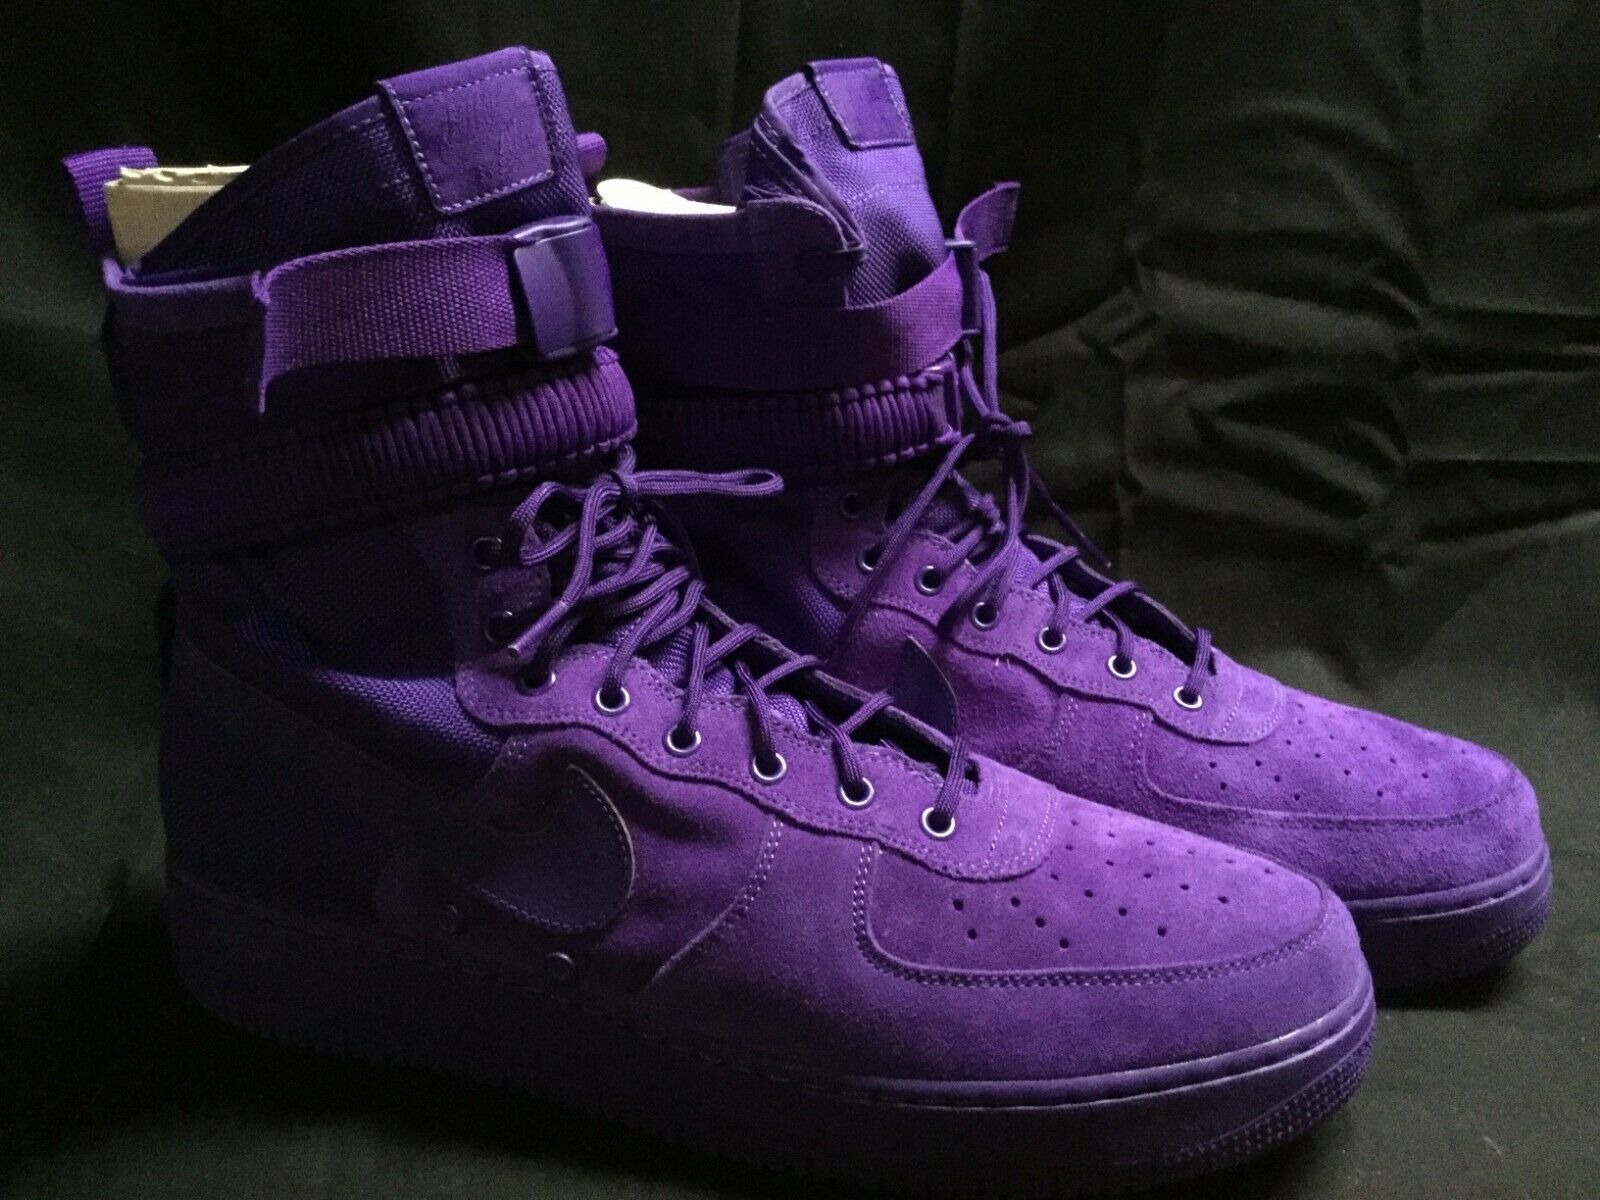 NEW, NIKE SF AF1 Special Air Force 1 One High Boot Court Purple Size 15